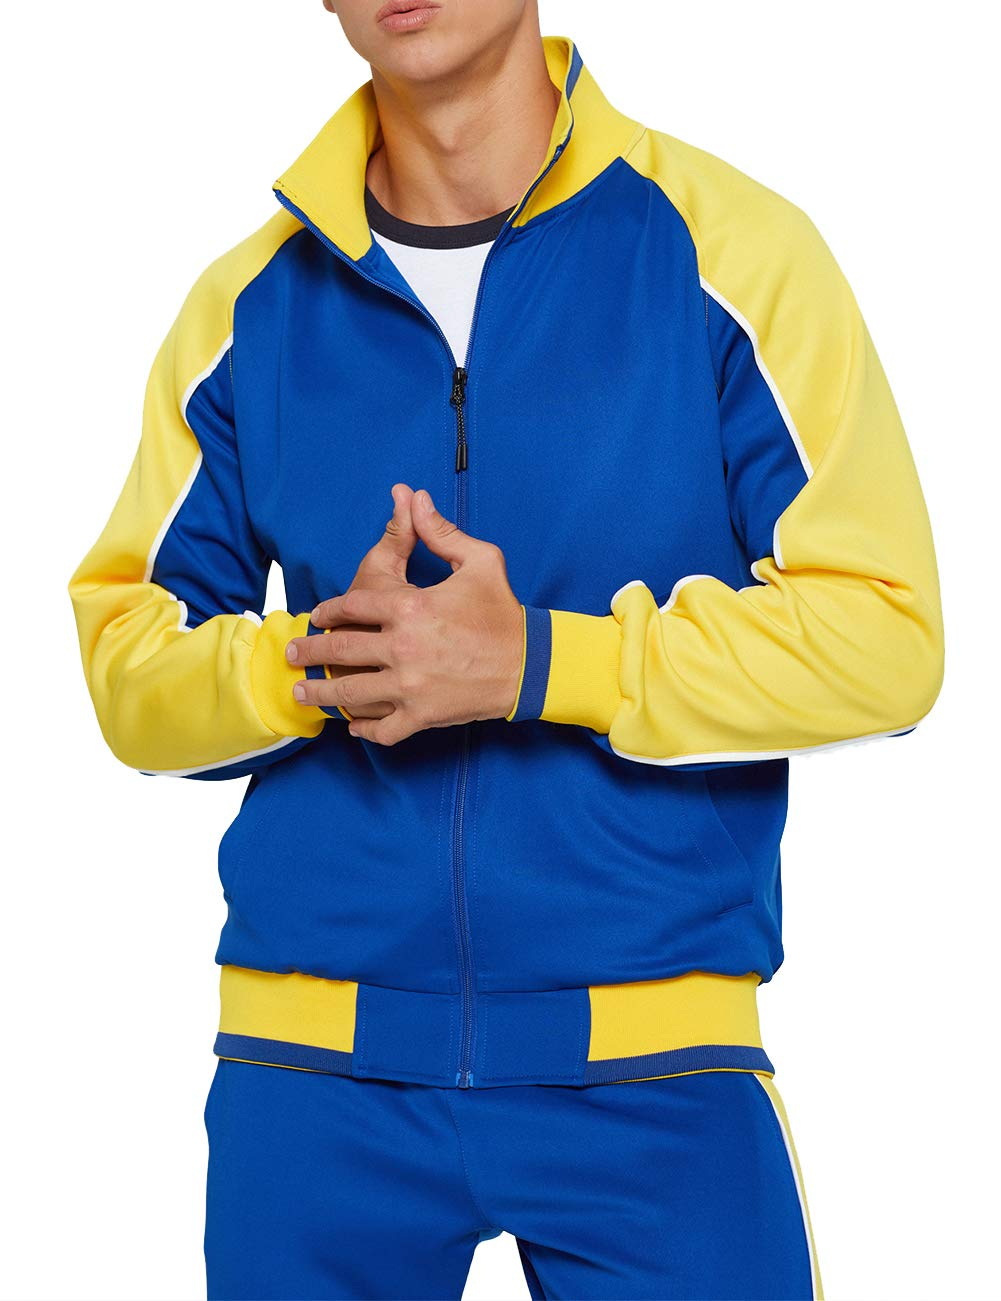 Men's Activewear Full Zip Warm Tracksuit Sports Set Casual Sweat Suit, Blue-S by DUOFIER